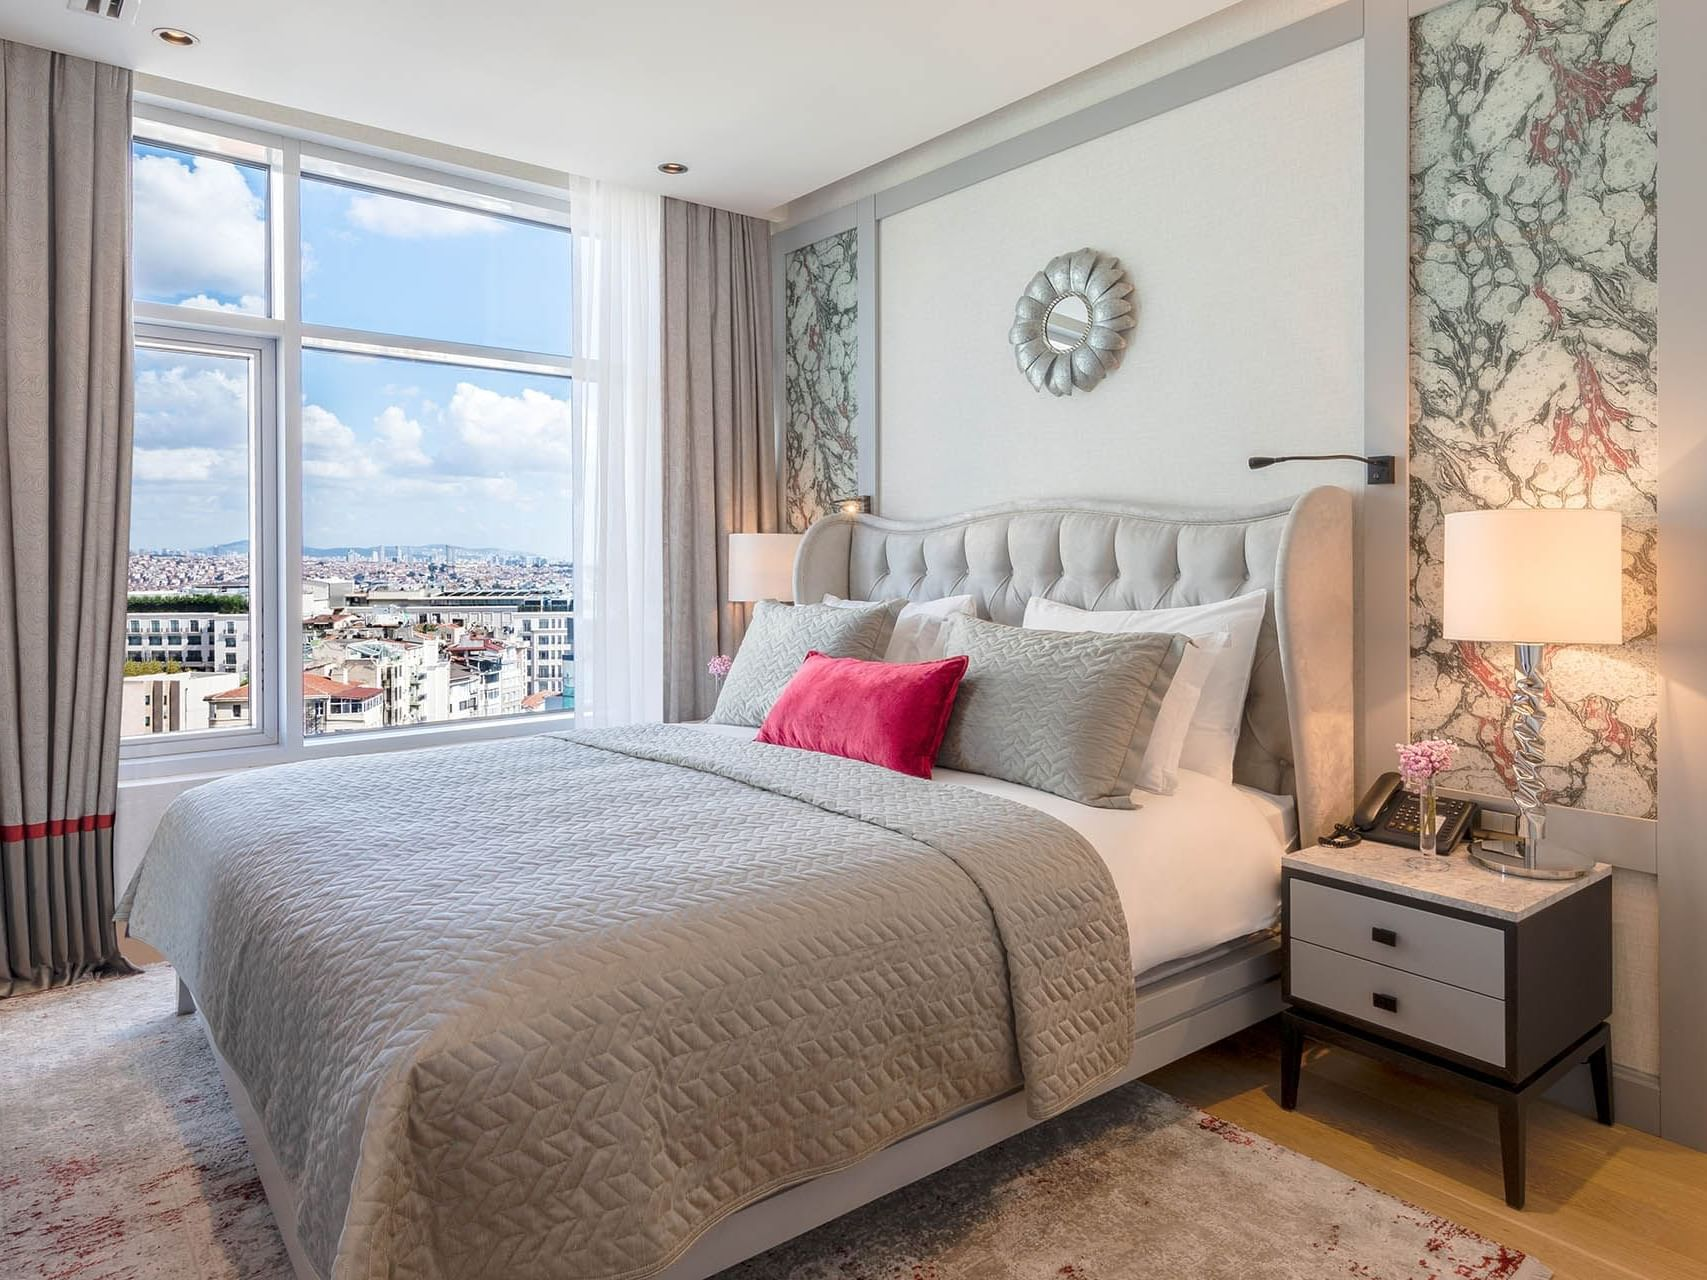 Taksim Suite with one bed at CVK Taksim Hotel Istanbul